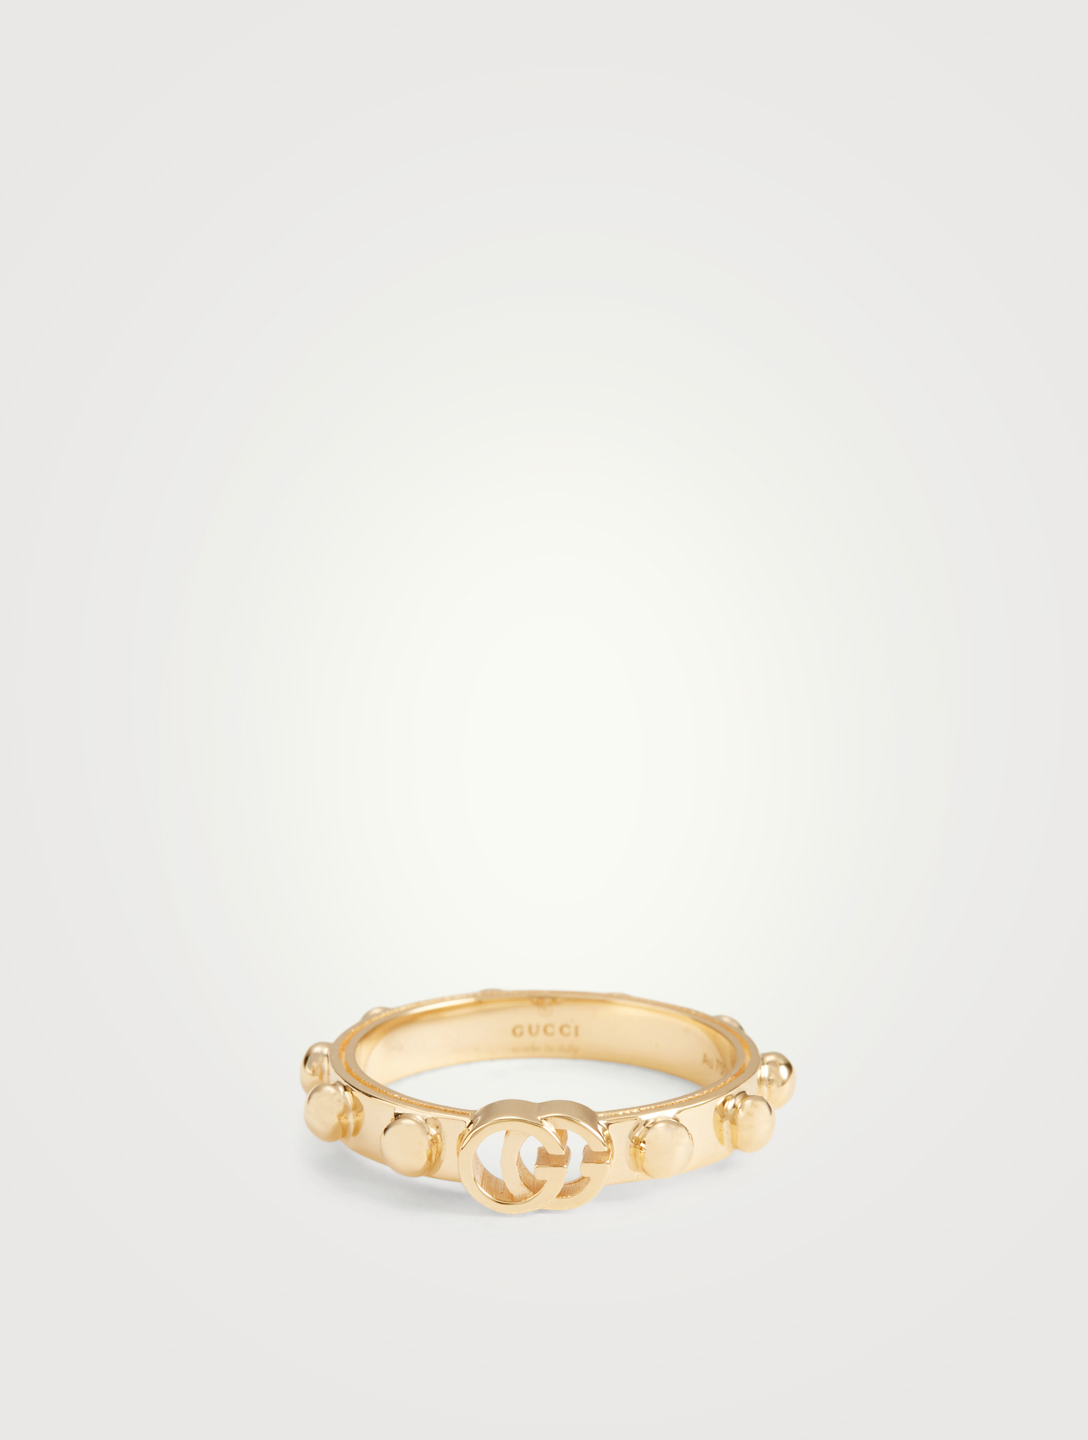 839eee630ad8 GUCCI GG Running 18K Gold Ring